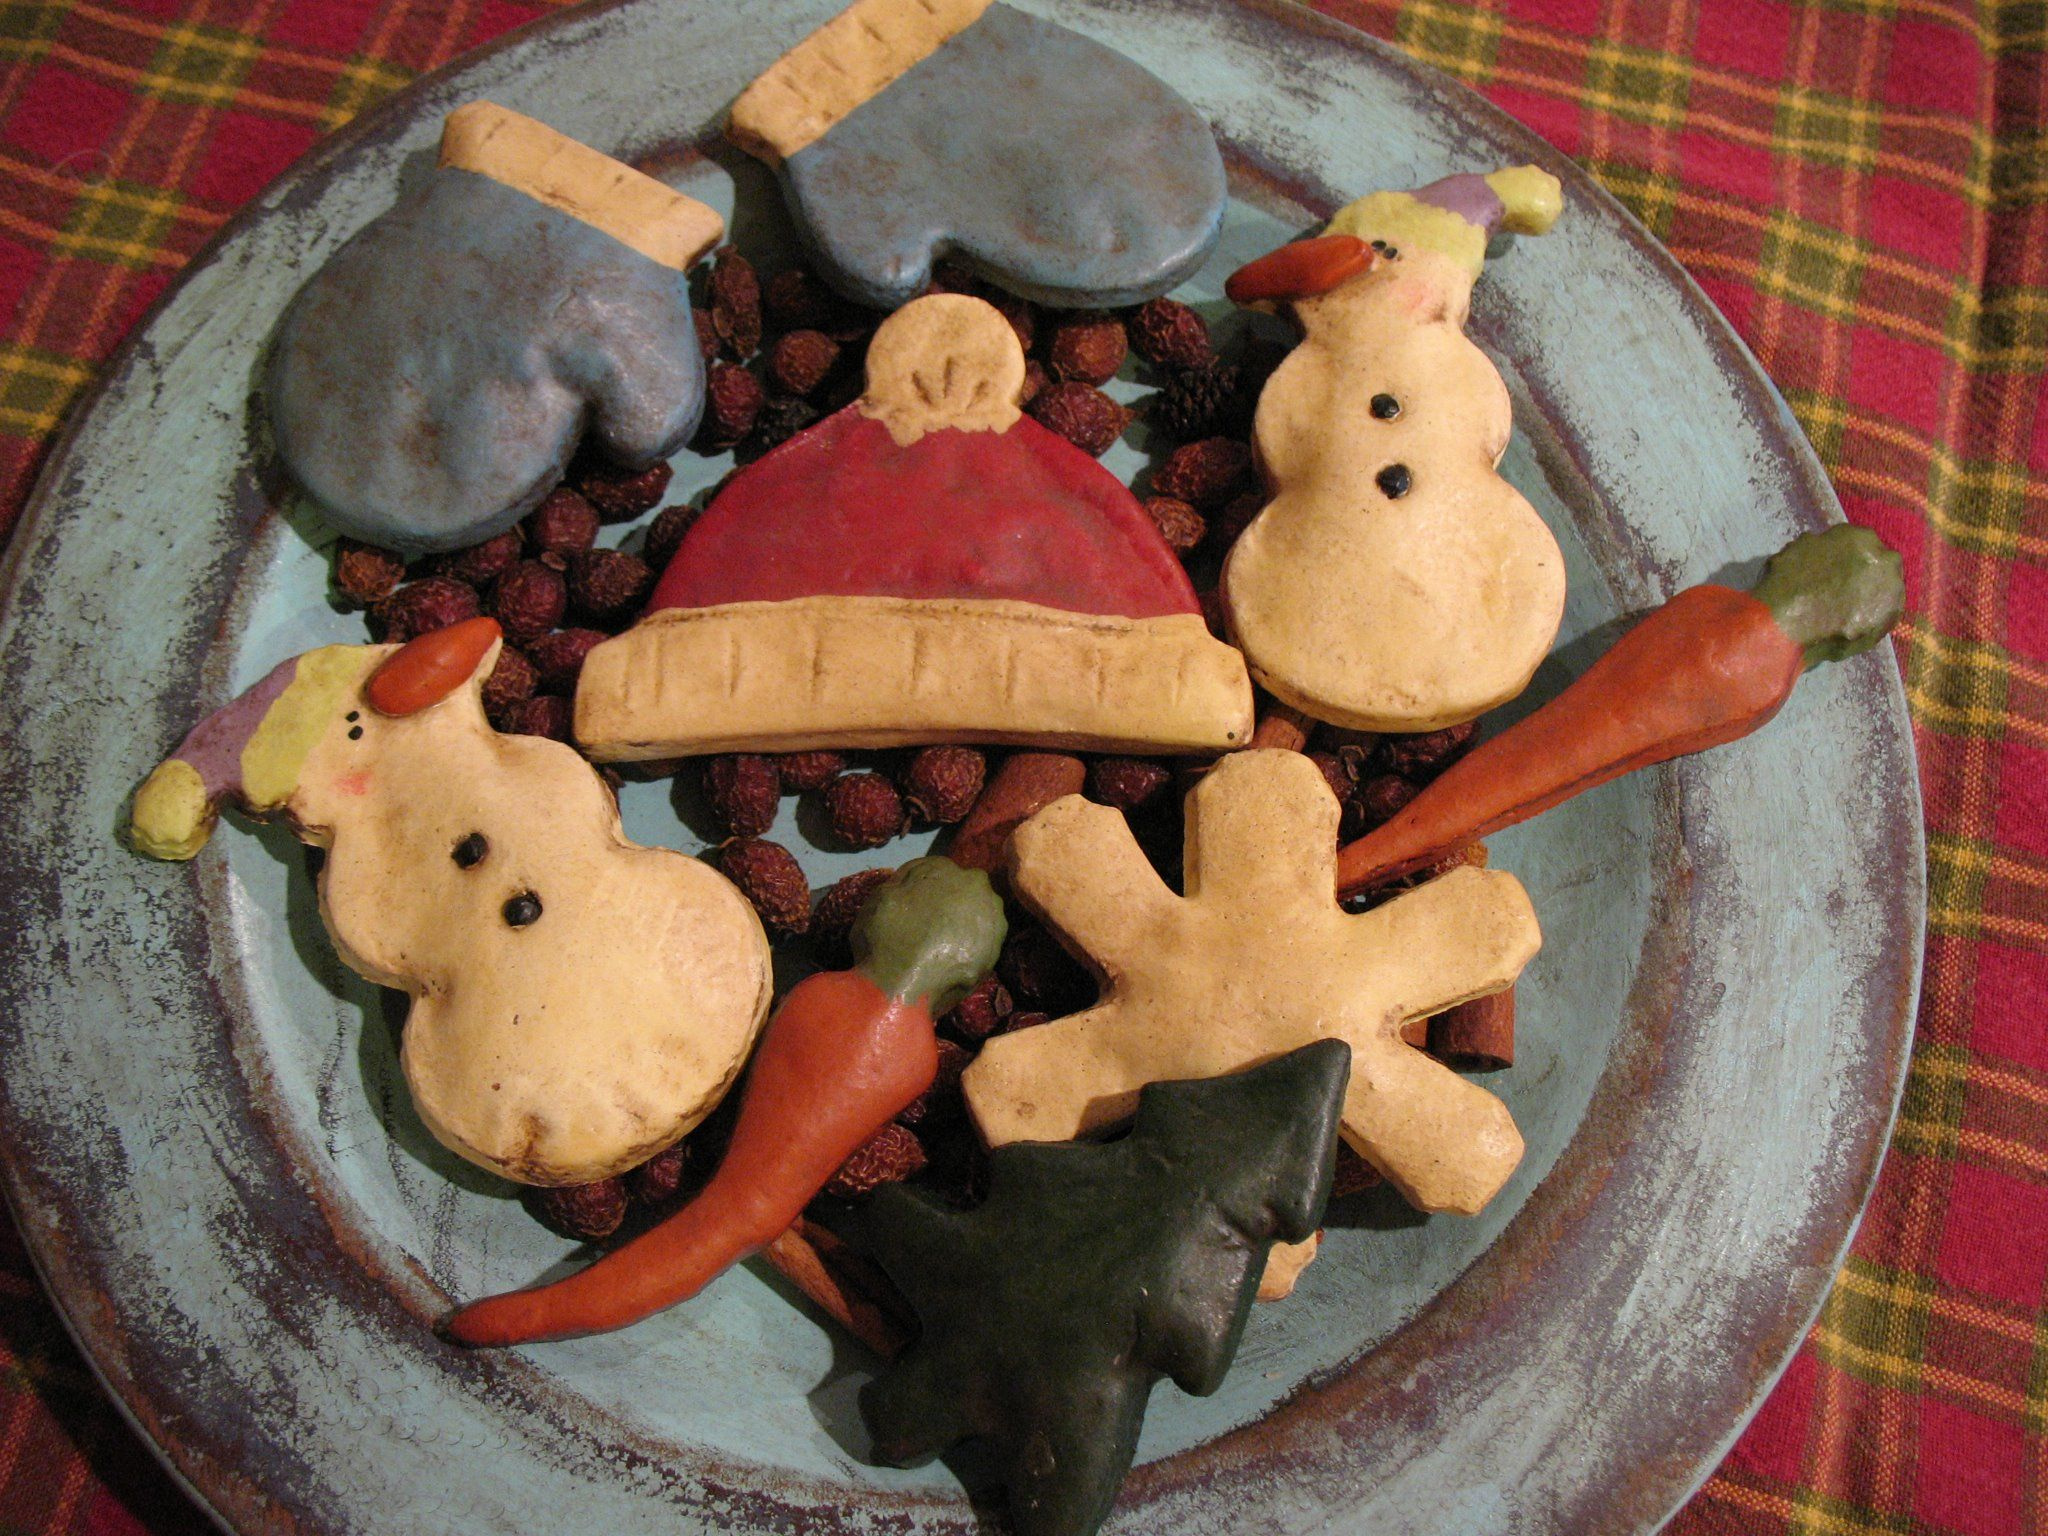 Salt Dough Ornaments Decorated For A Country Christmas These Would Look Pretty On A Primitiv Primitive Christmas Crafts Salt Dough Crafts Salt Dough Ornaments